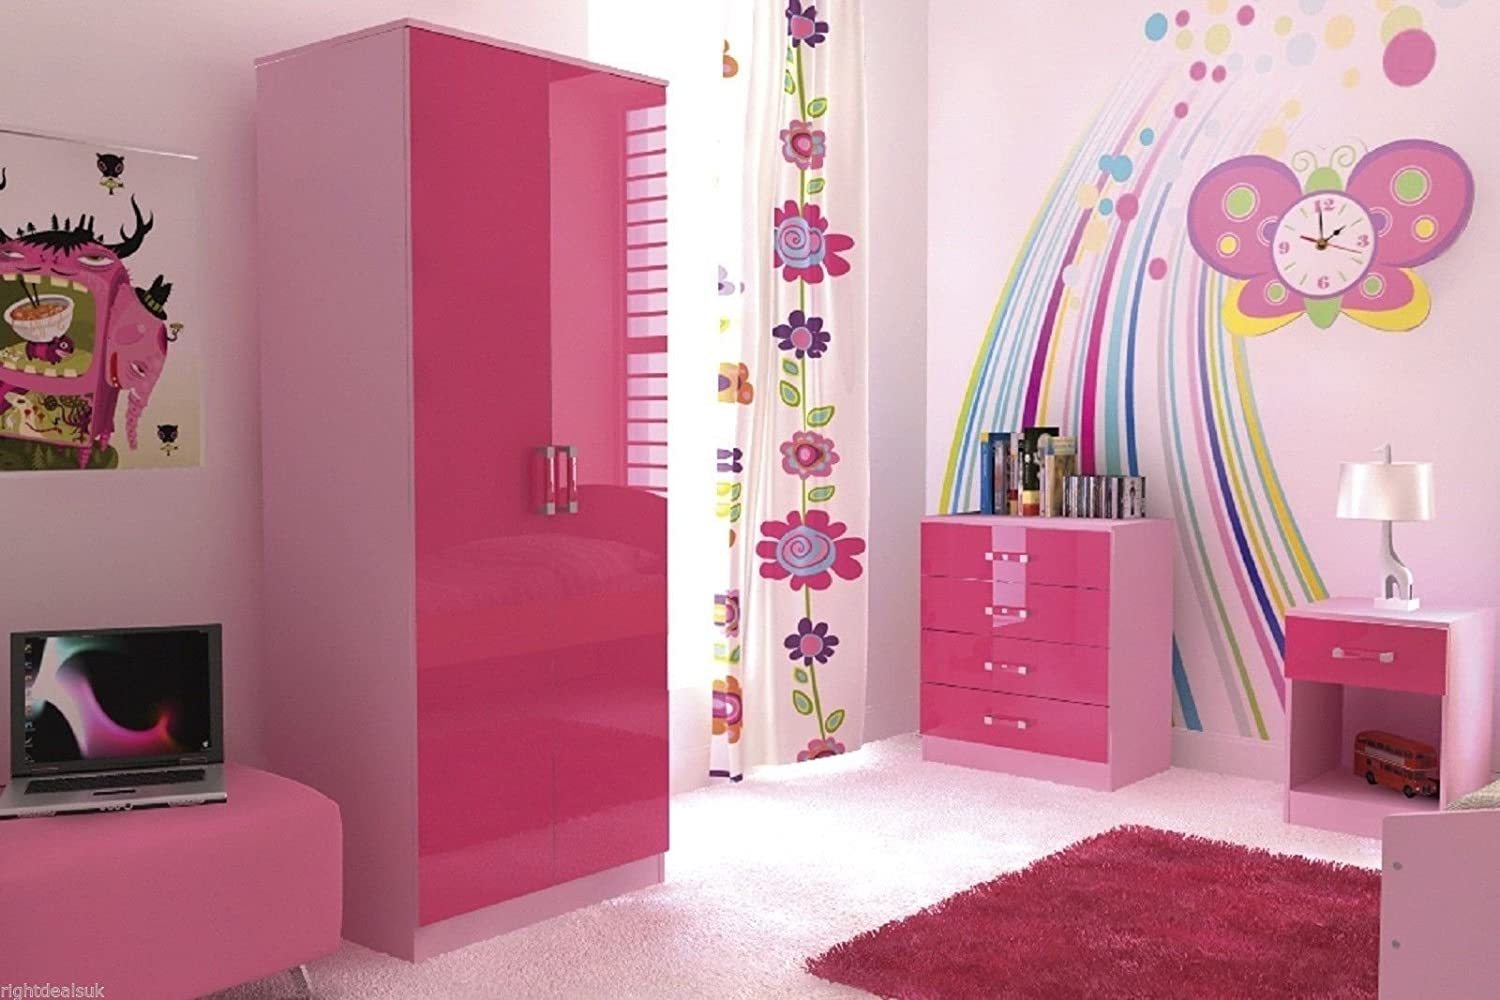 childrens pink bedroom furniture. ottawa 2 tone high gloss bedroom 3 piece furniture set pink: amazon.co.uk: kitchen \u0026 home childrens pink